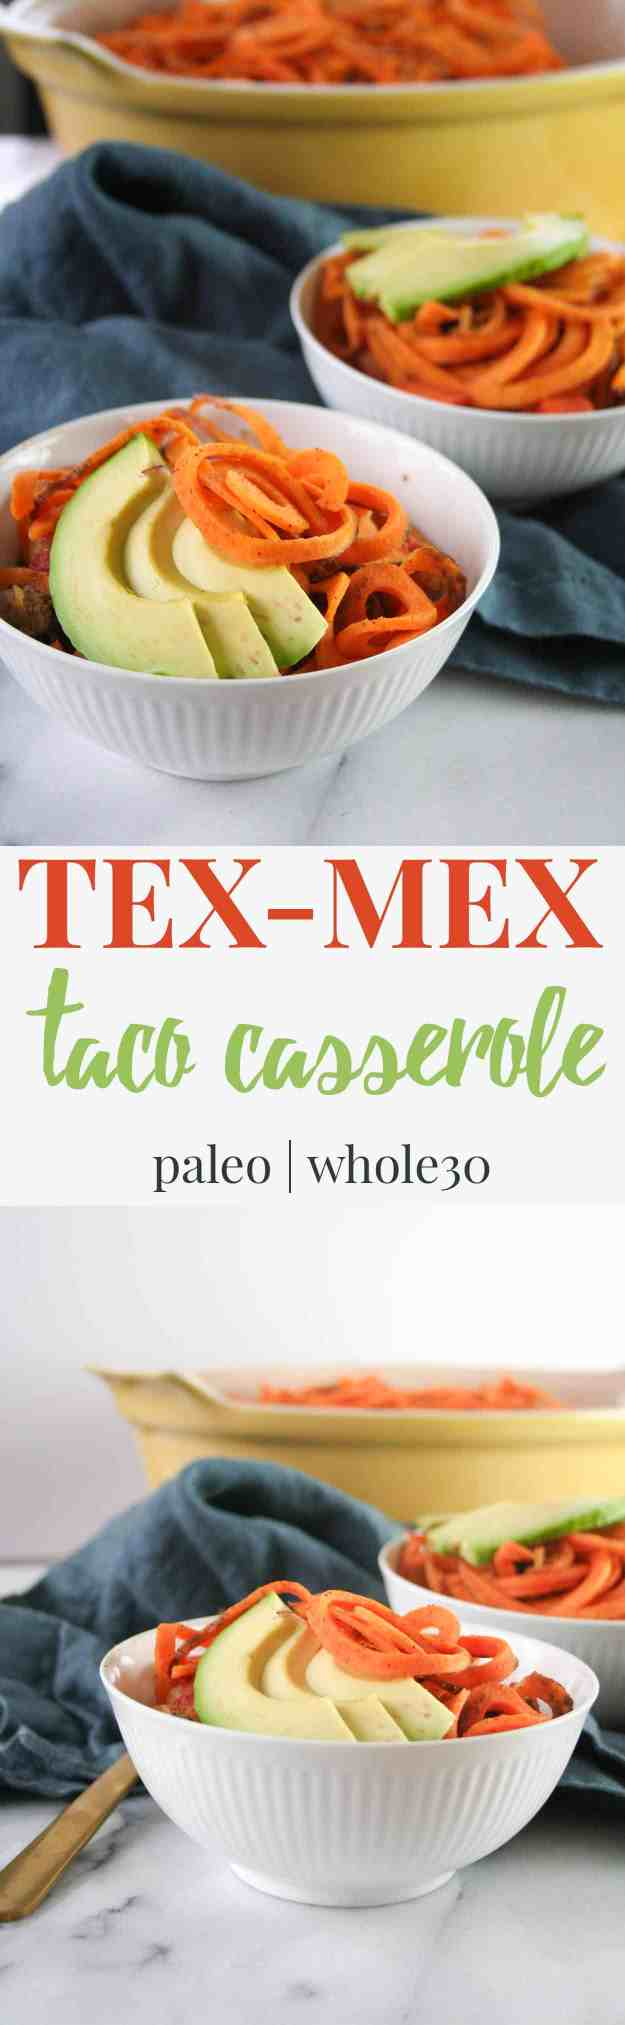 Tex-Mex Taco Casserole | Paleo, Whole30, Easy, Healthy, Spiralized | hungrybynature.com